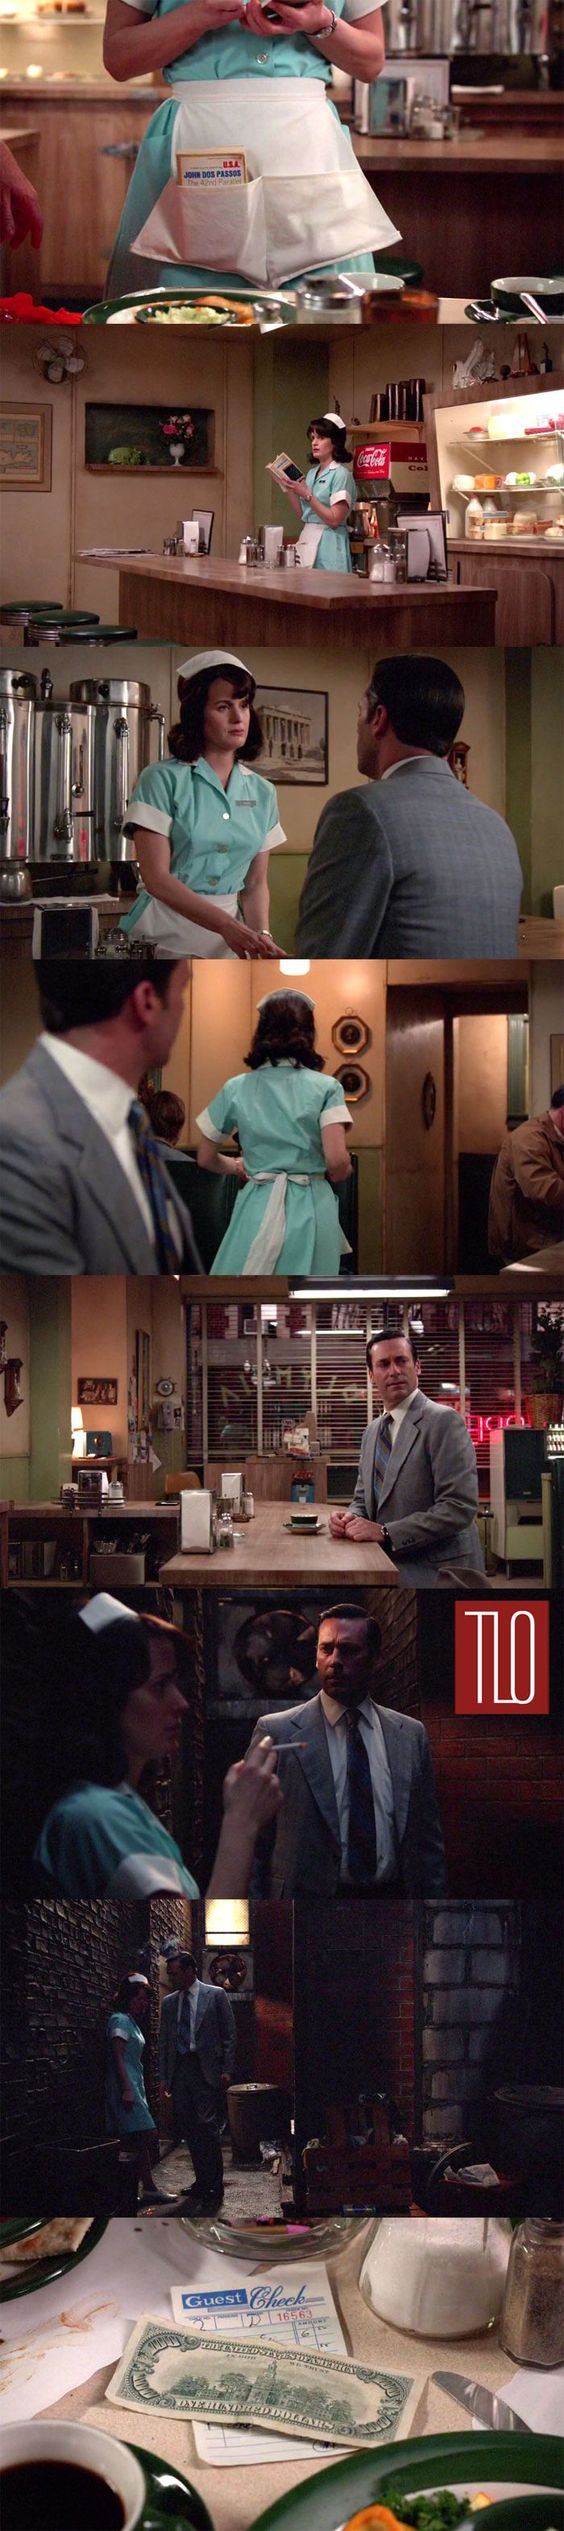 Mad-Men-Television-Series-Season-7-Episode-8-Severance-Mad-Style-Costume-Analysis-Tom-Lorenzo-Site-TLO (12)